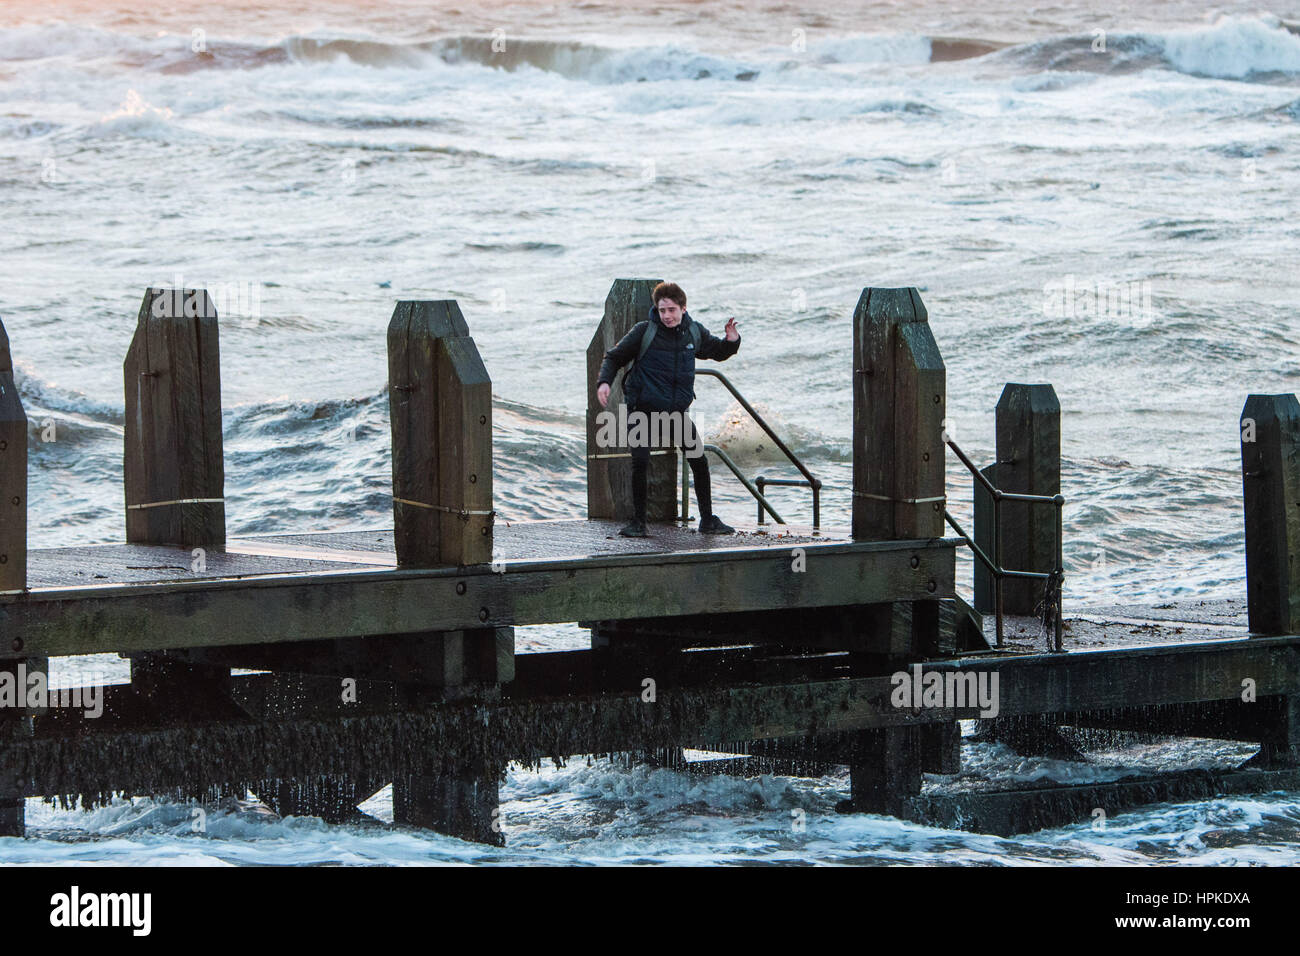 Aberystwyth Wales UK, Thursday 23 Feb 2017 UK Weather: Teenagers on the jetty in Aberystwyth playing a risky game - Stock Image